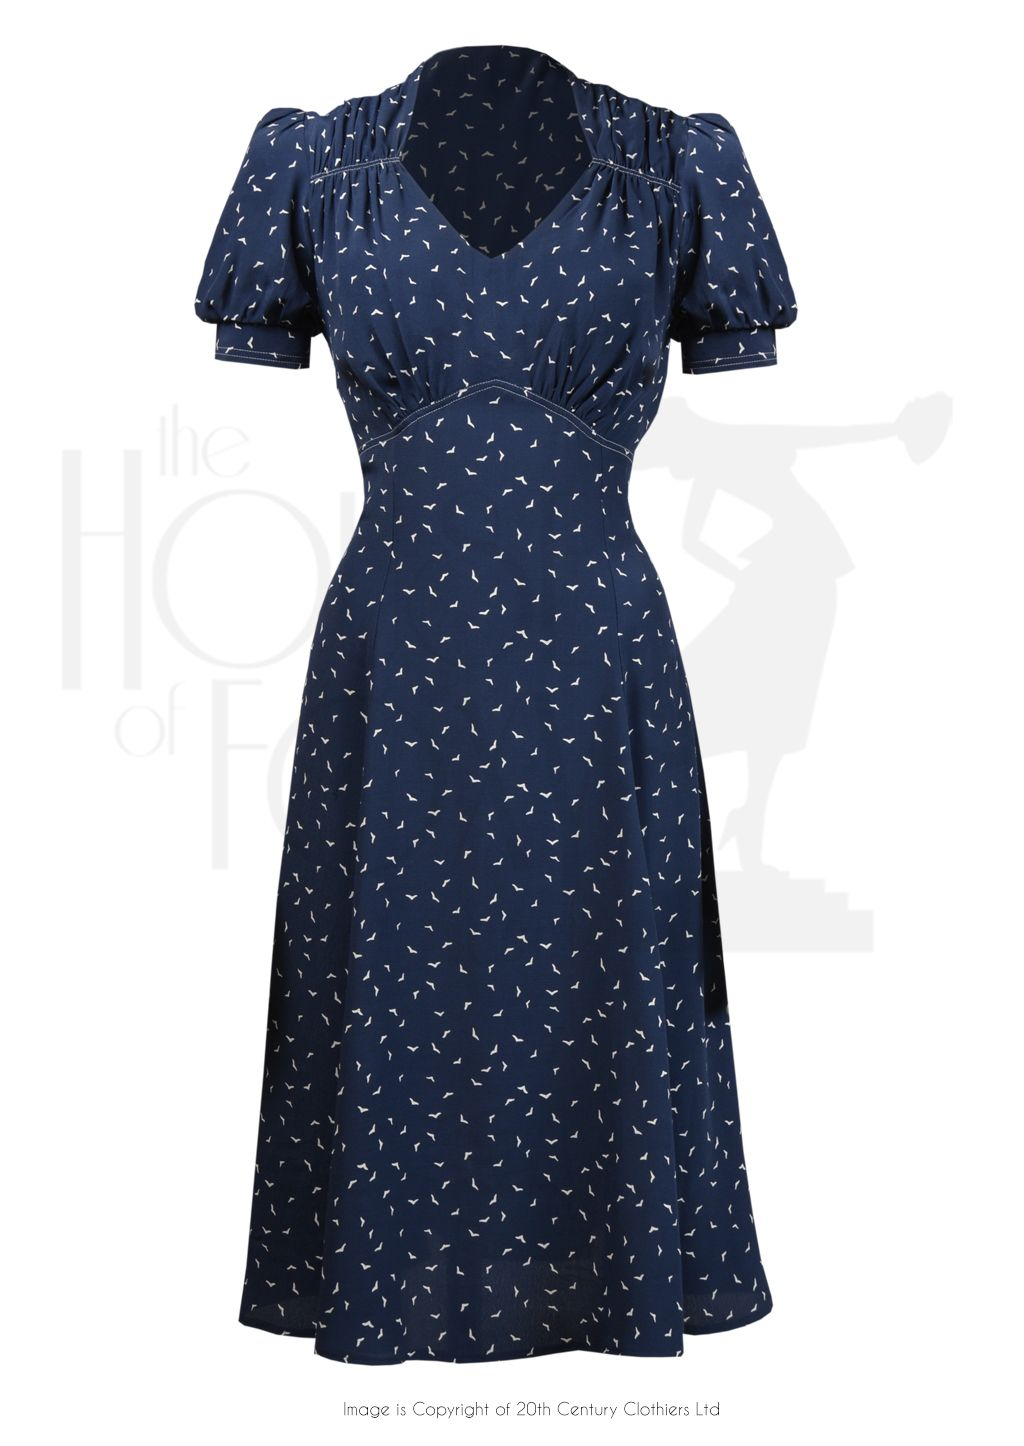 f39ef9b45d 1940s Perfect Tea Dance Dress in Starling Rayon Crepe